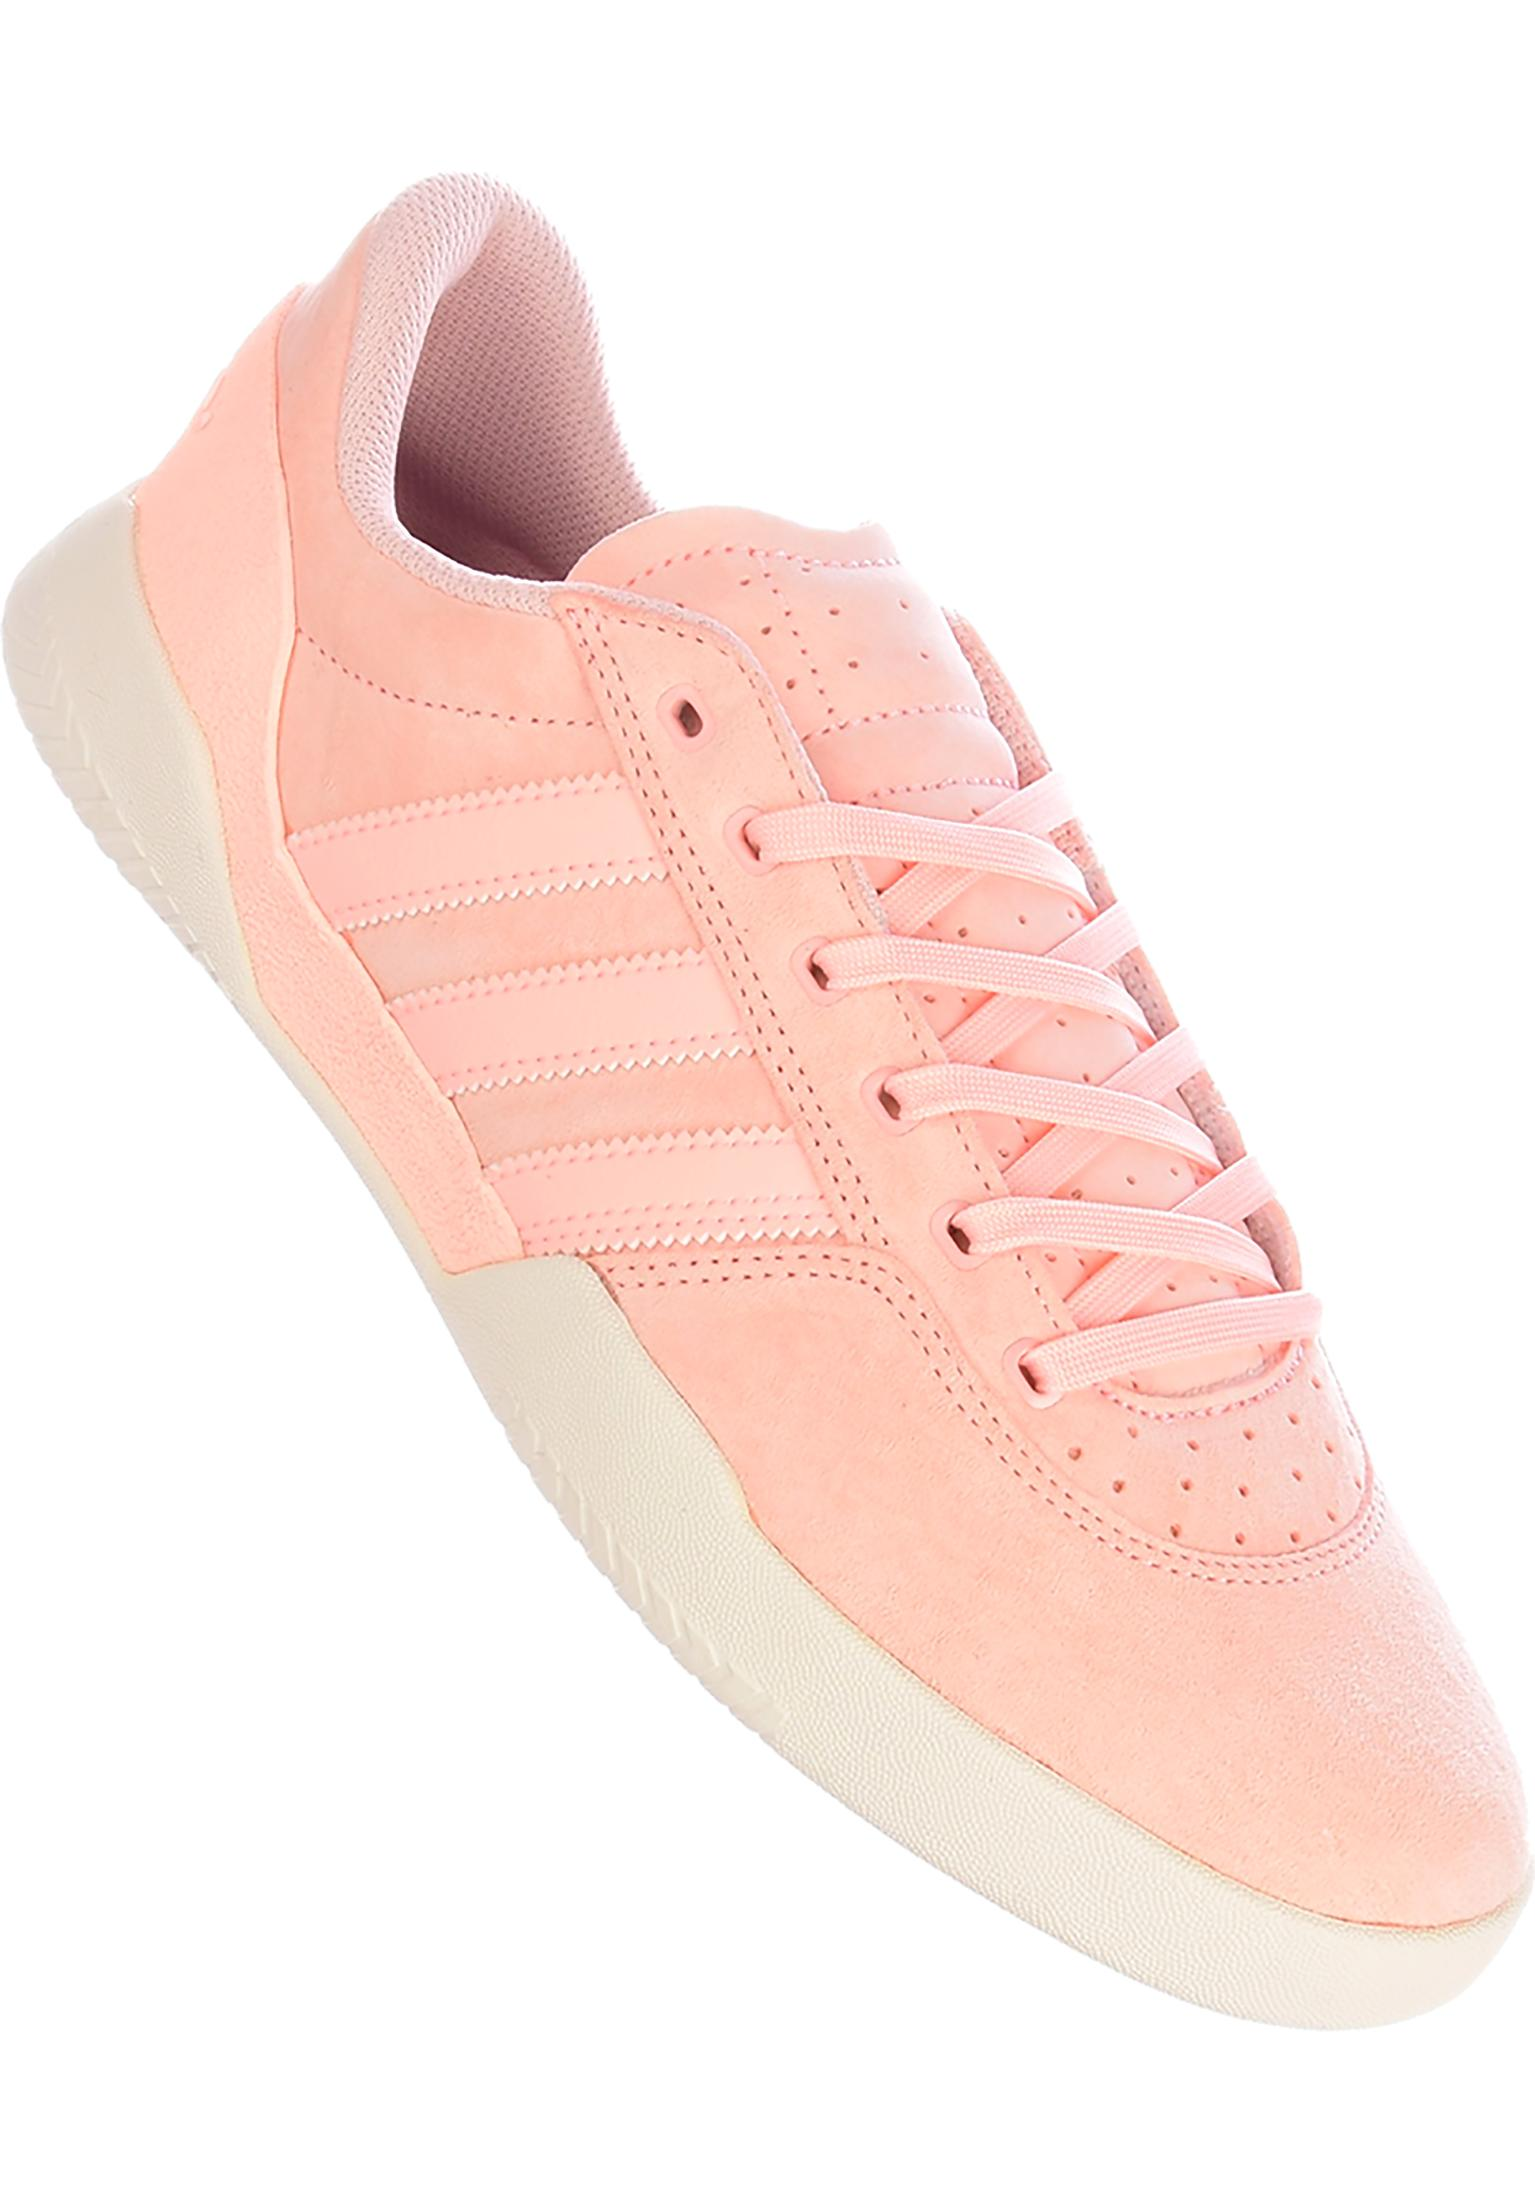 City Cup adidas skateboarding All Shoes in clearorange white